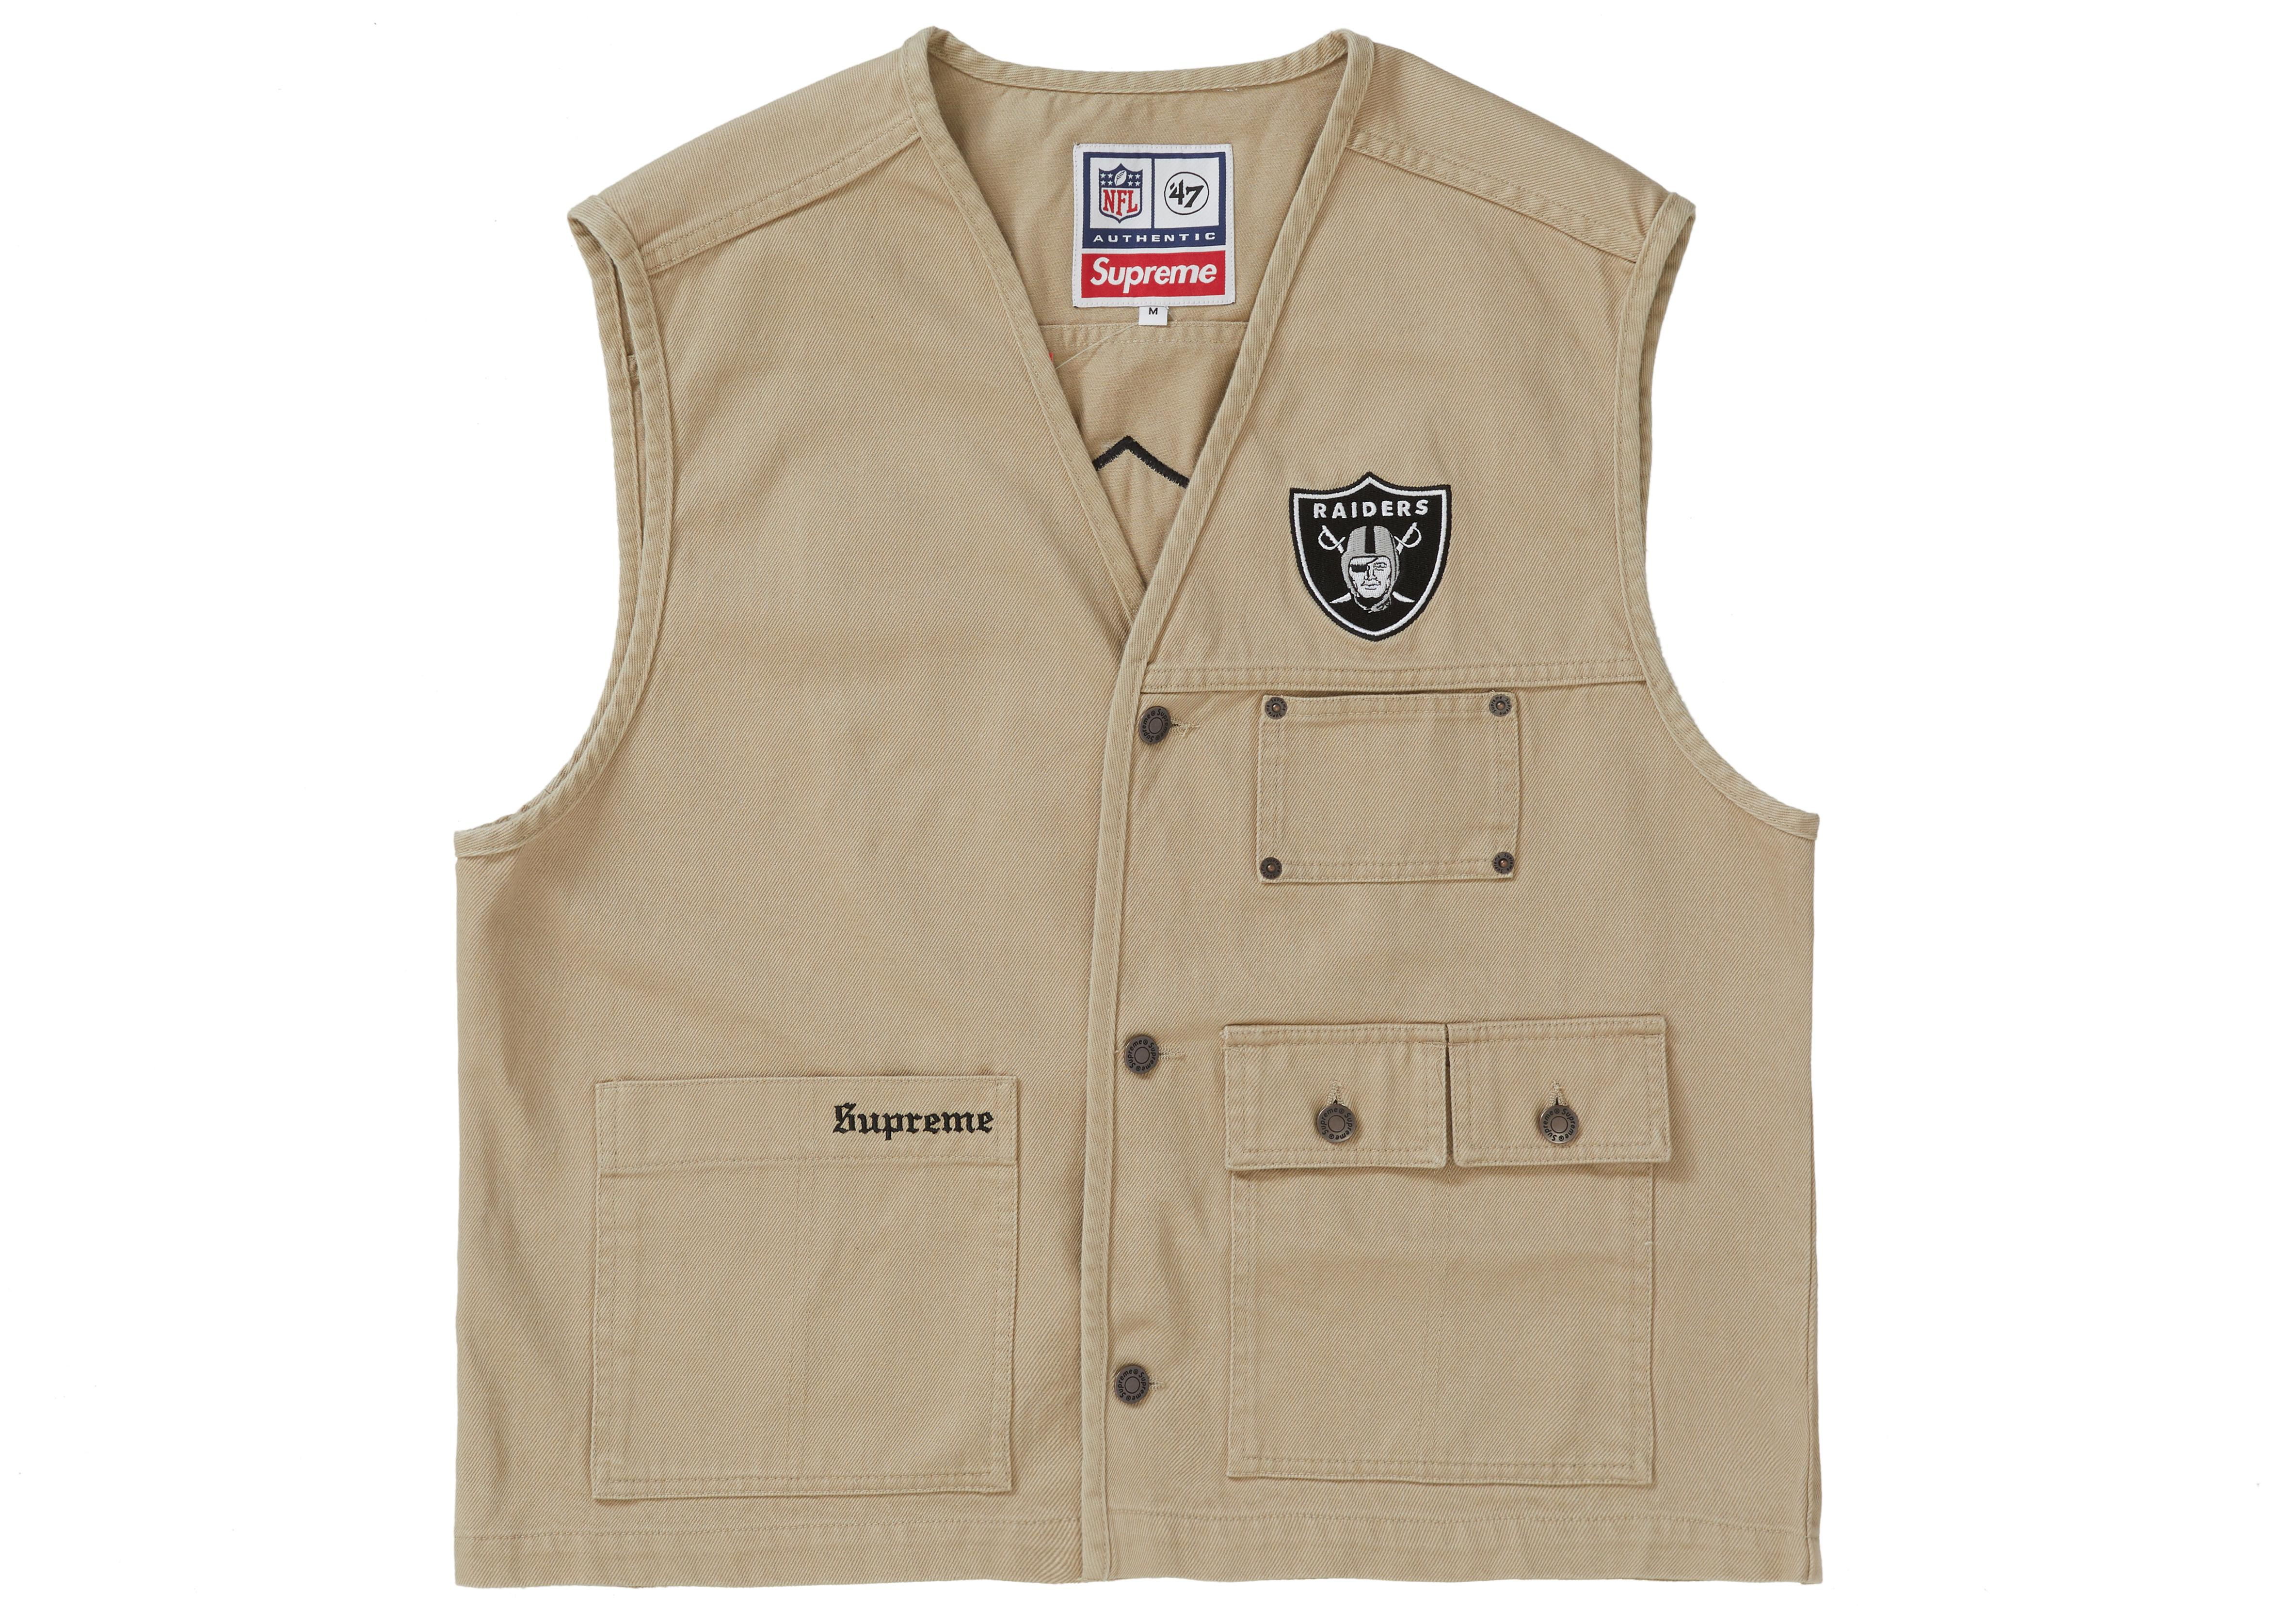 5caa31dc Lyst - Supreme Nfl X Raiders X '47 Denim Vest Khaki in Natural for Men